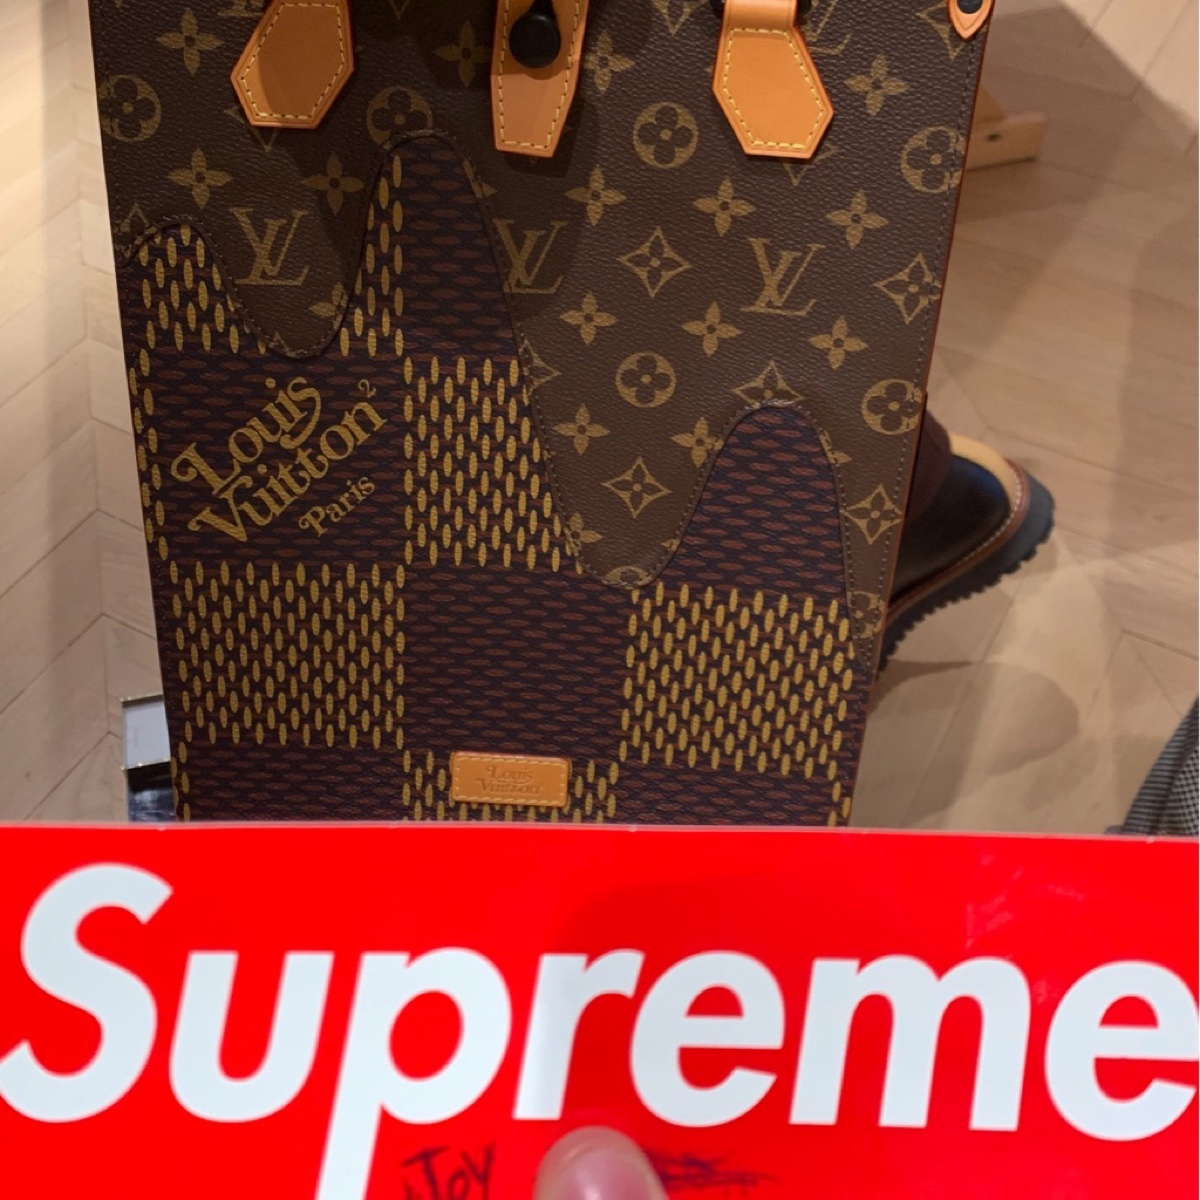 Louis Vuitton x Nigo Bag tote mini